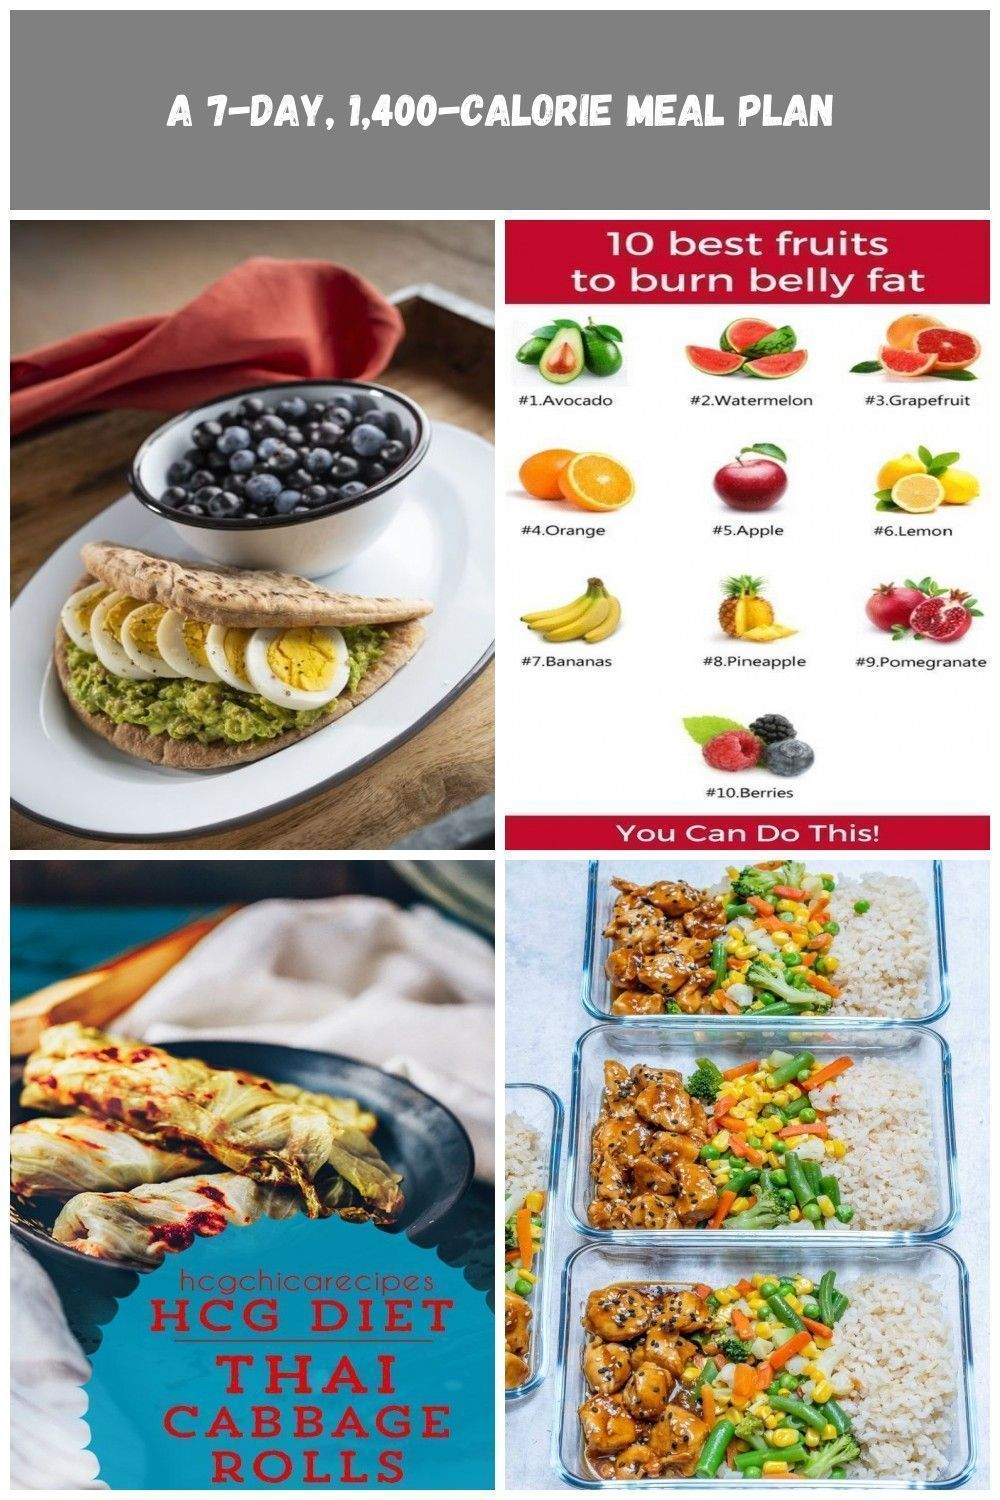 Seven Day 1400 calorie meal plan diet plan clean eating A 7Day 1400Calorie Meal Plan Seven Day 1400 calorie meal plan diet plan clean eating A 7Day 1400Calorie Meal Plan...